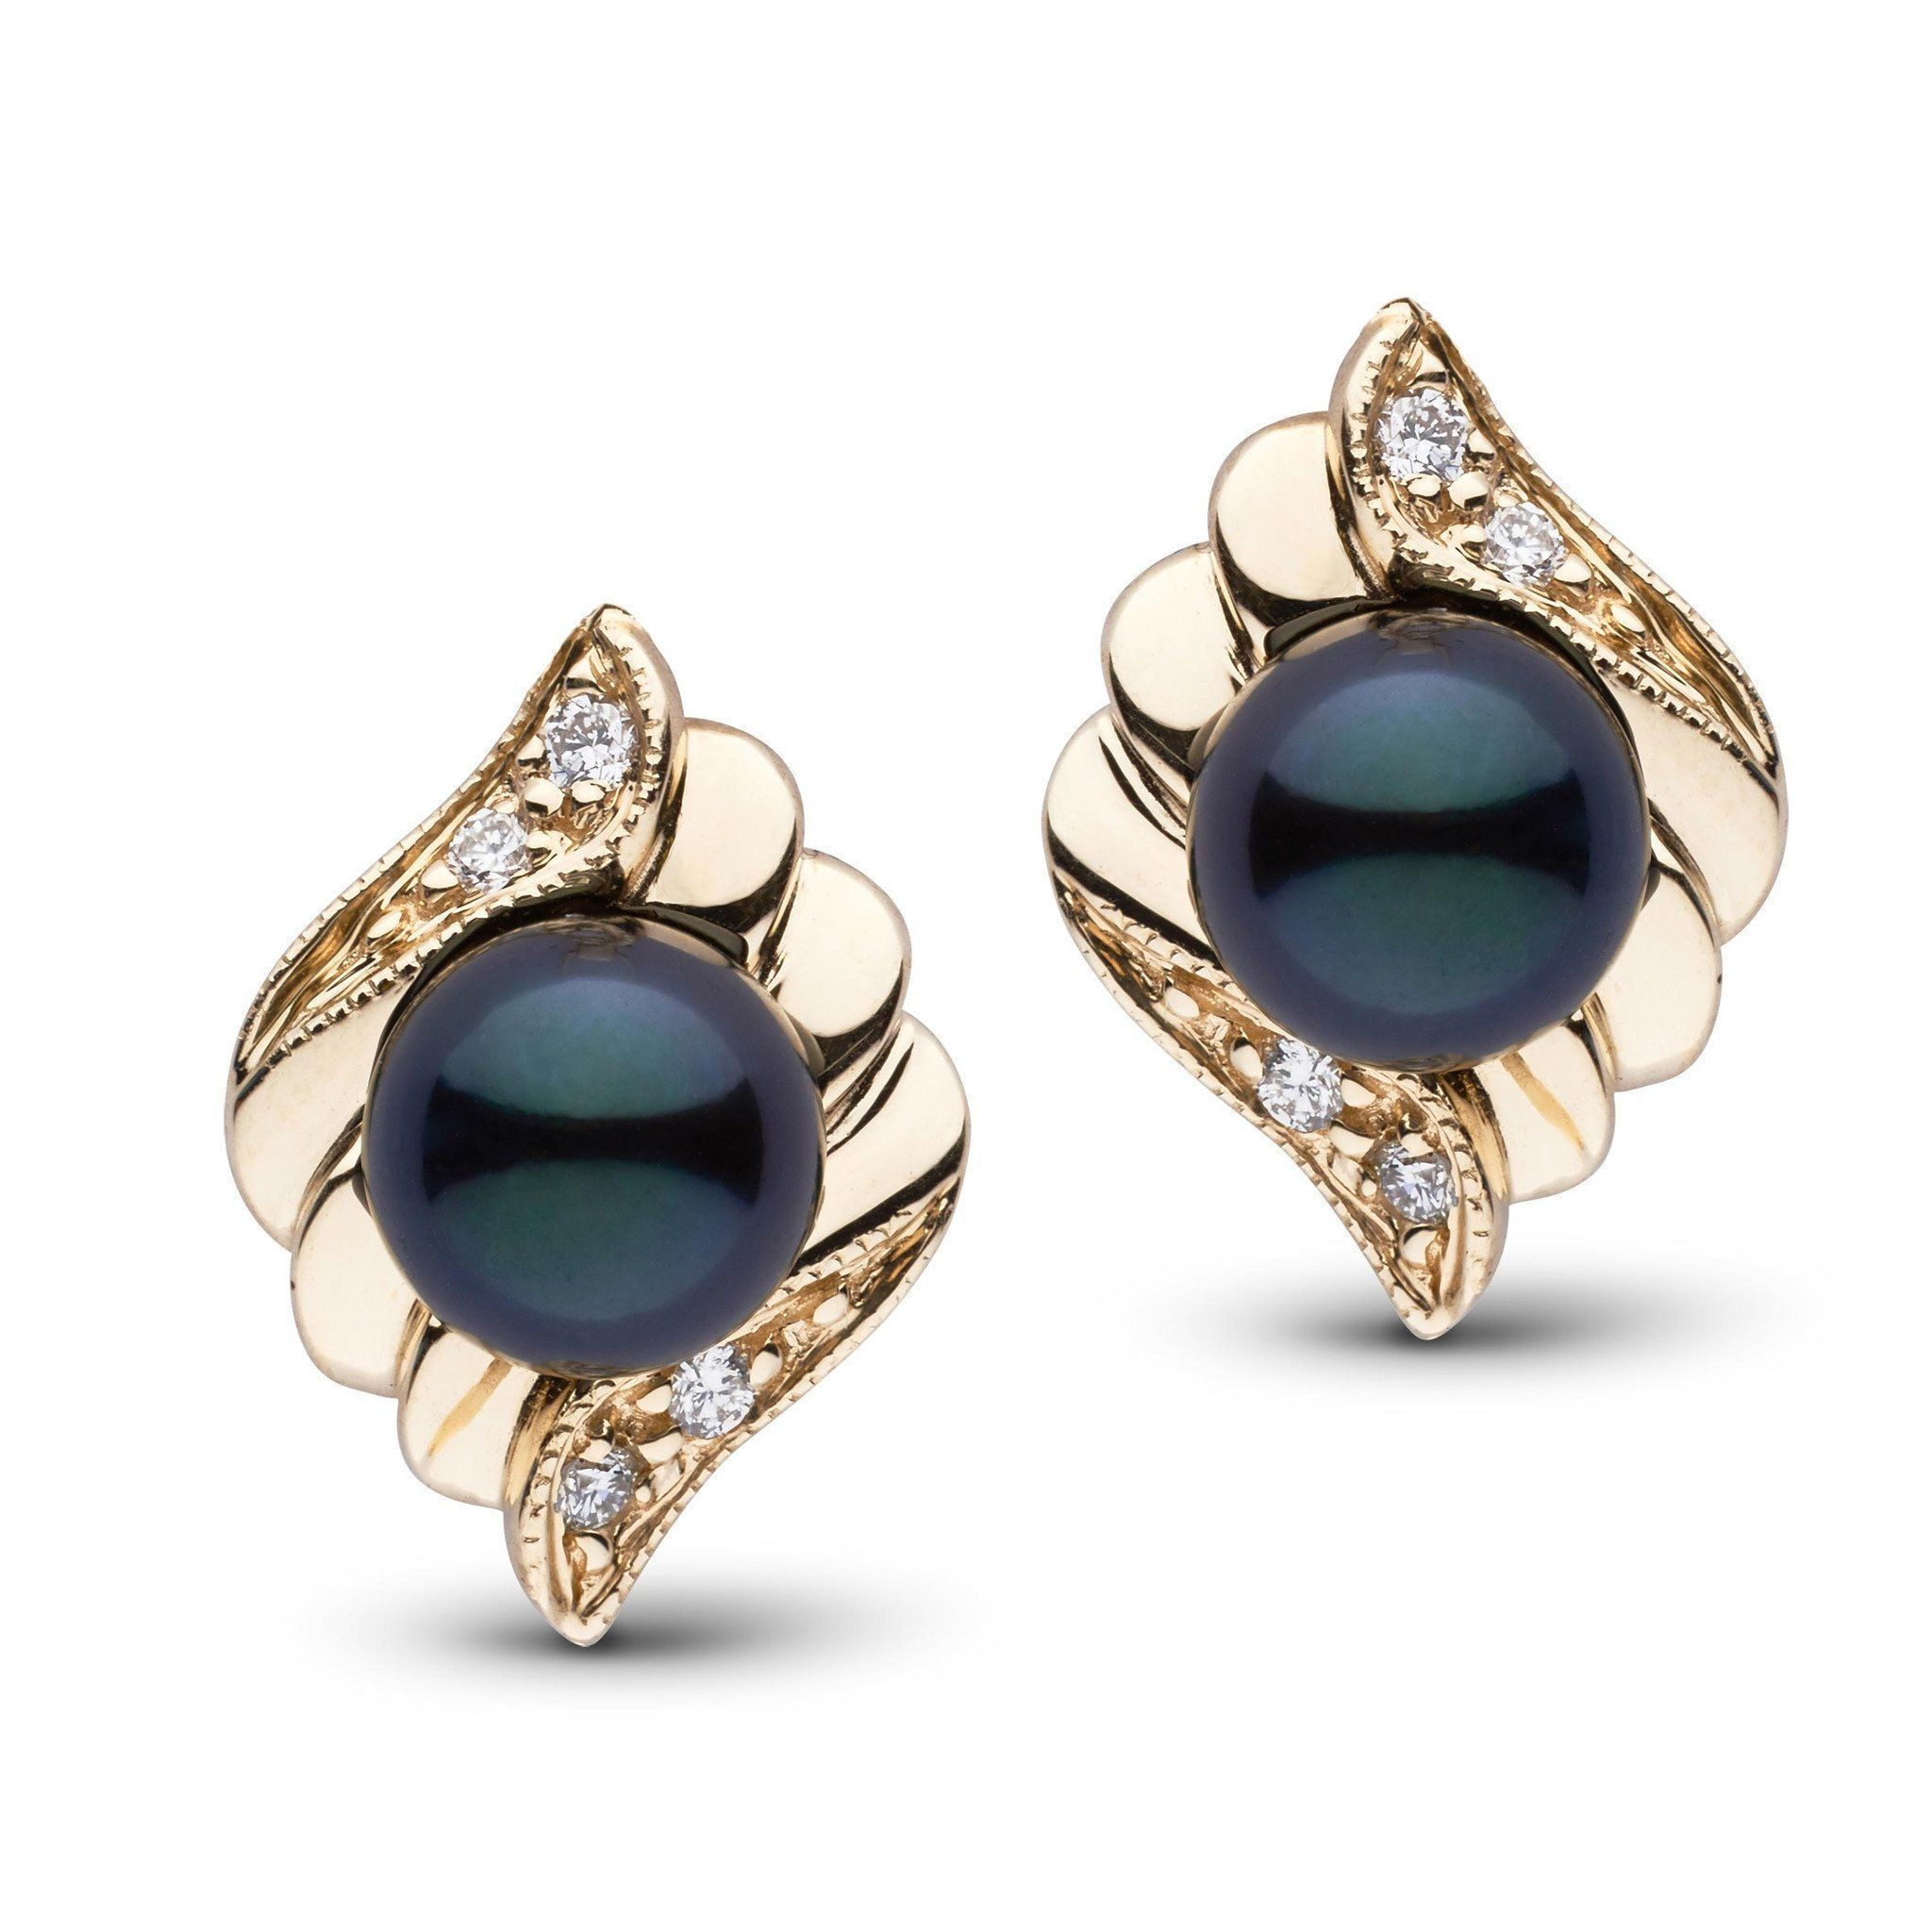 Julep Collection Black Akoya Pearl and Diamond Earrings